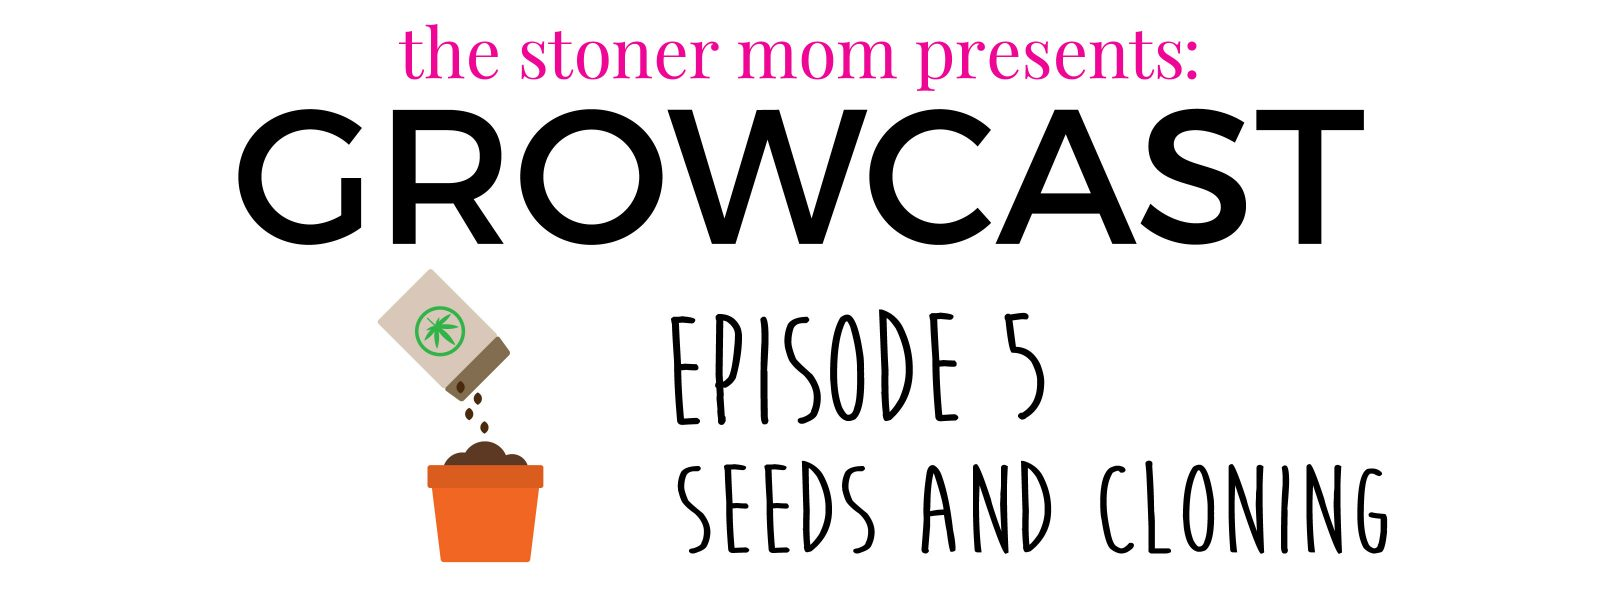 growcast_header5